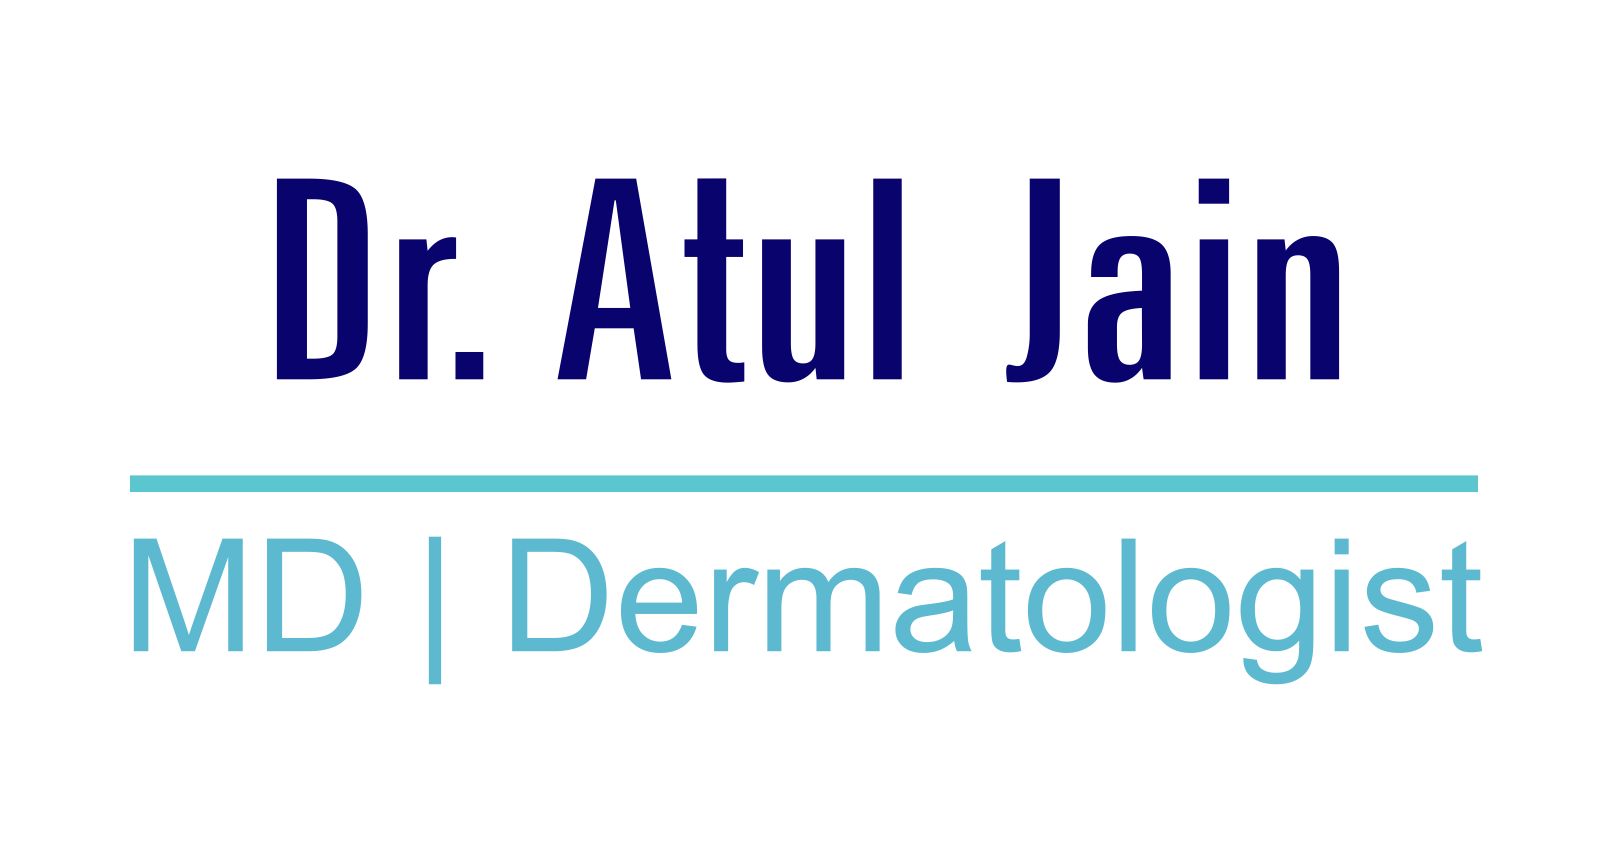 Dr. Atul Jain| Best Skin Specialist in Jaipur|Dermatologist in Jaipur| Skin Disease Treatments in Jaipur